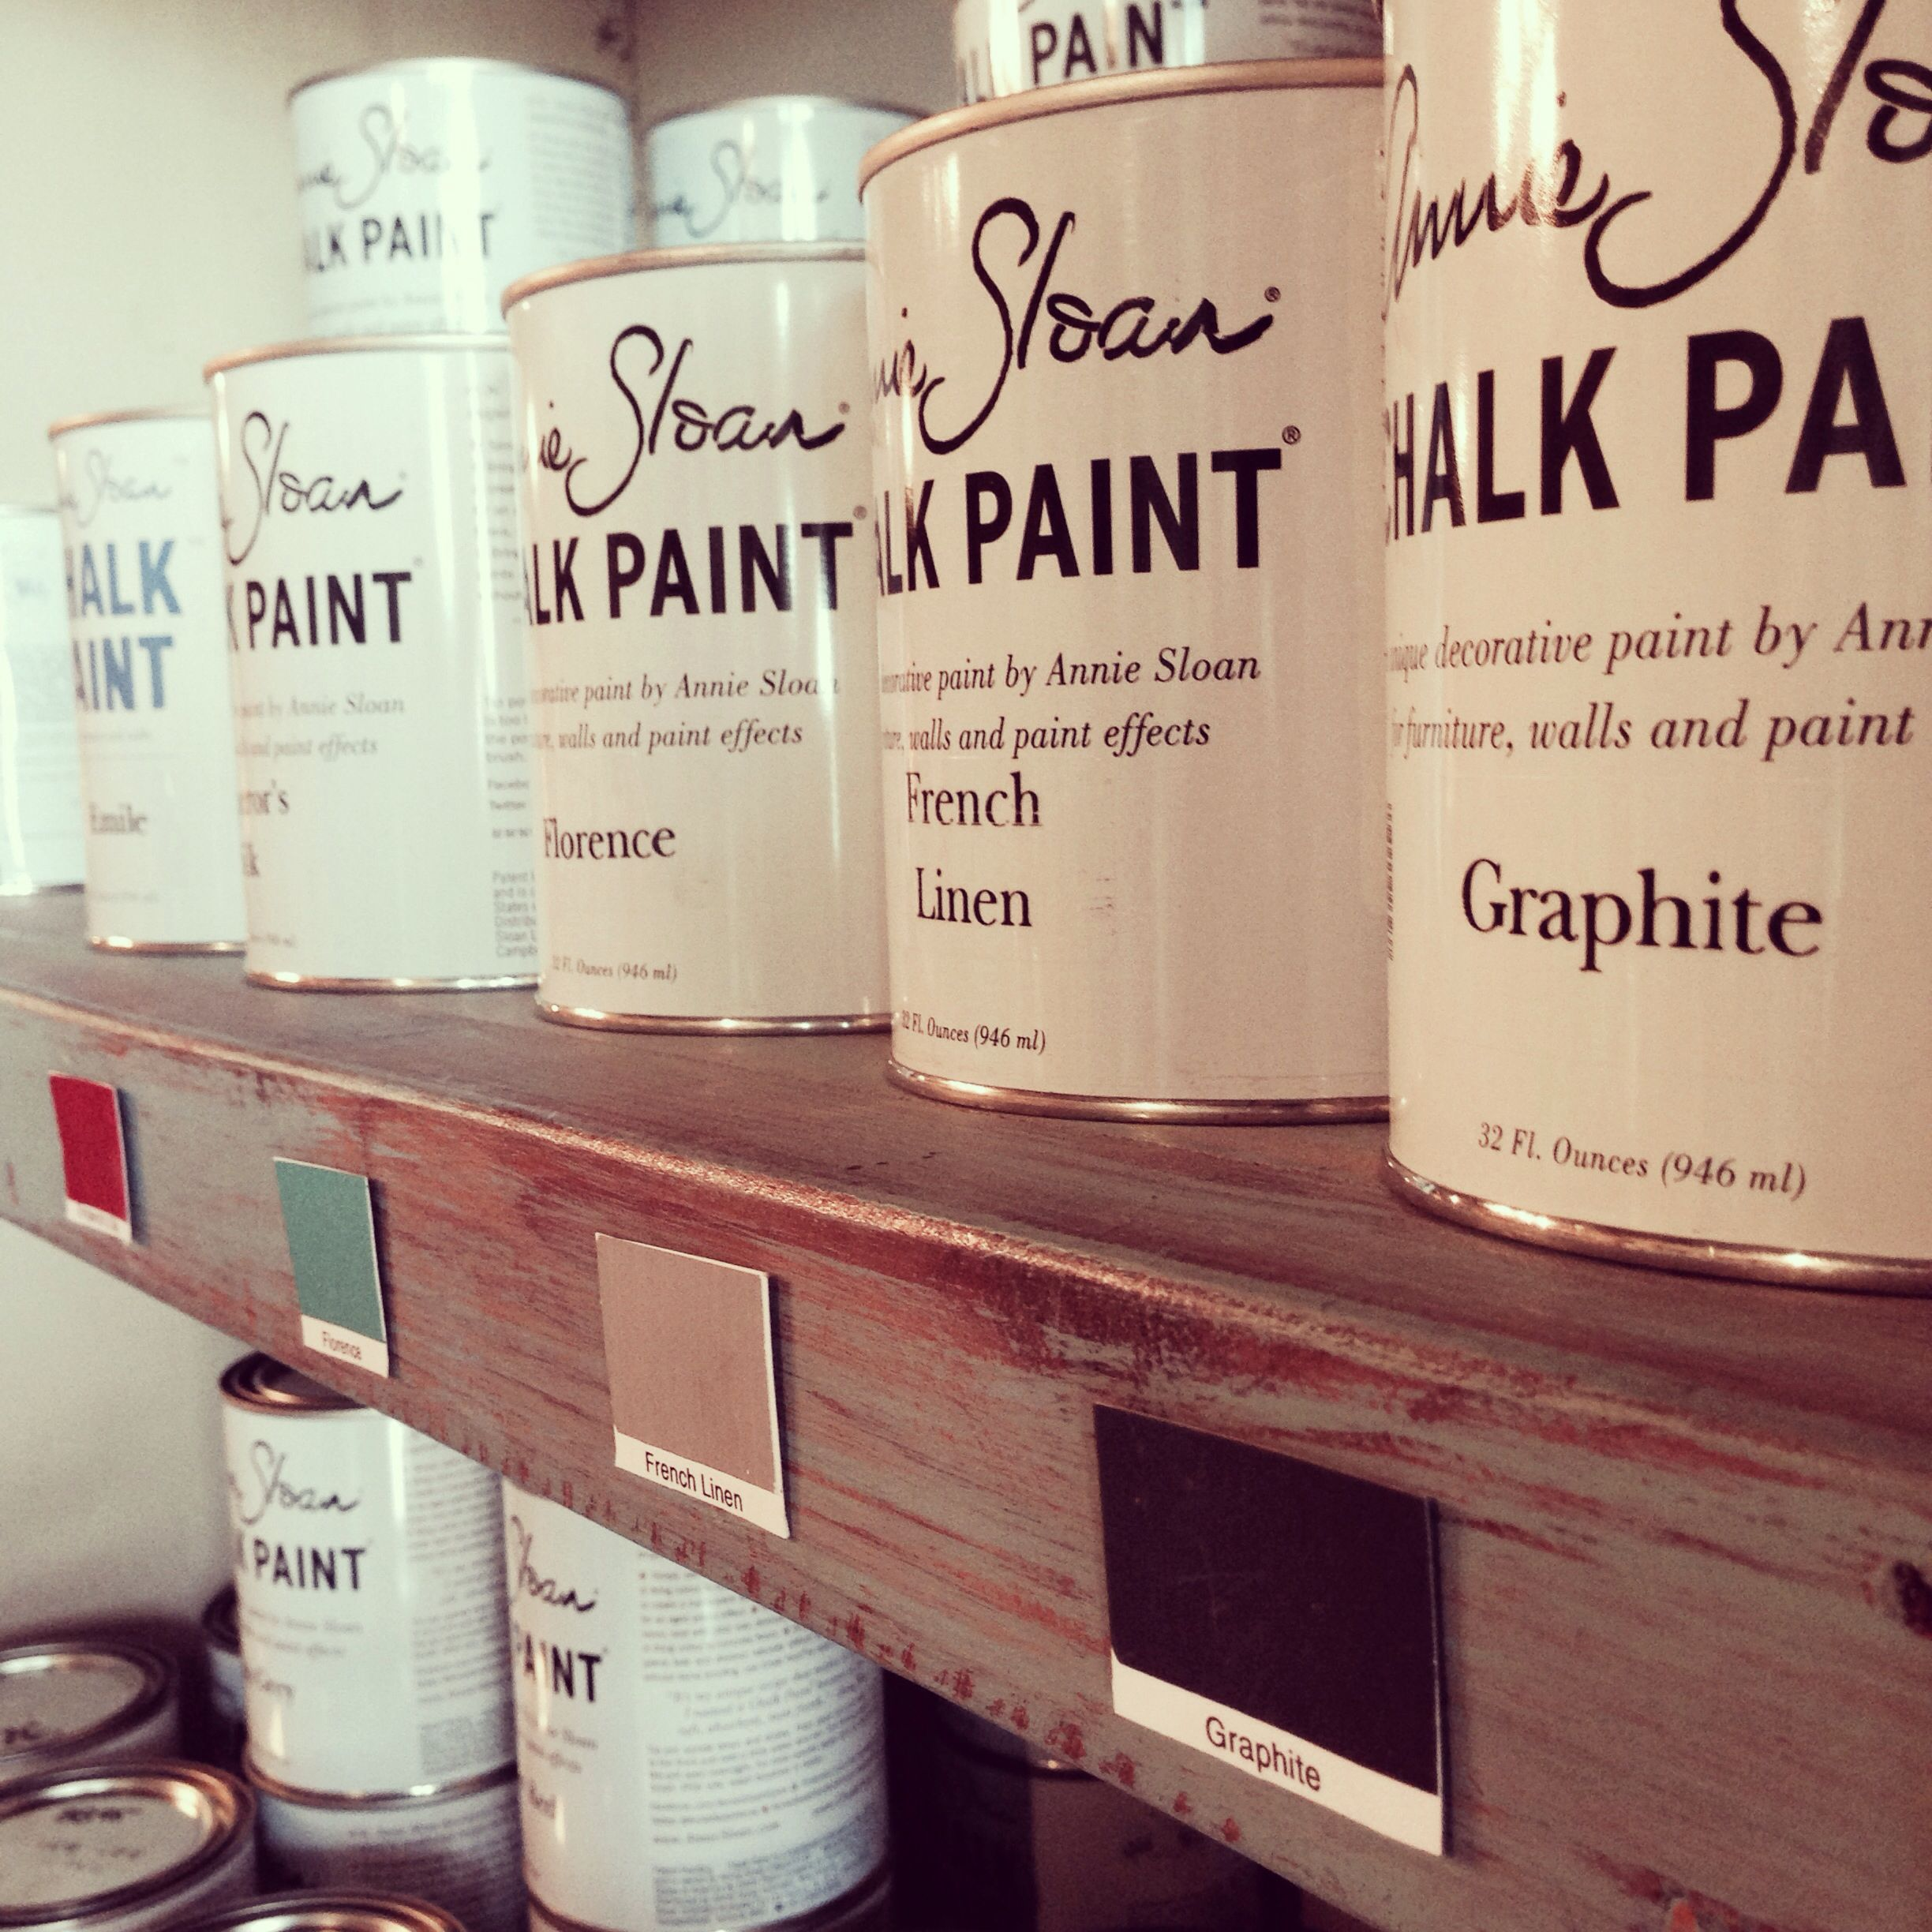 Ahhh the infamous chalk paint #nevergoingback #morethanpaint  LiveDecorated.com